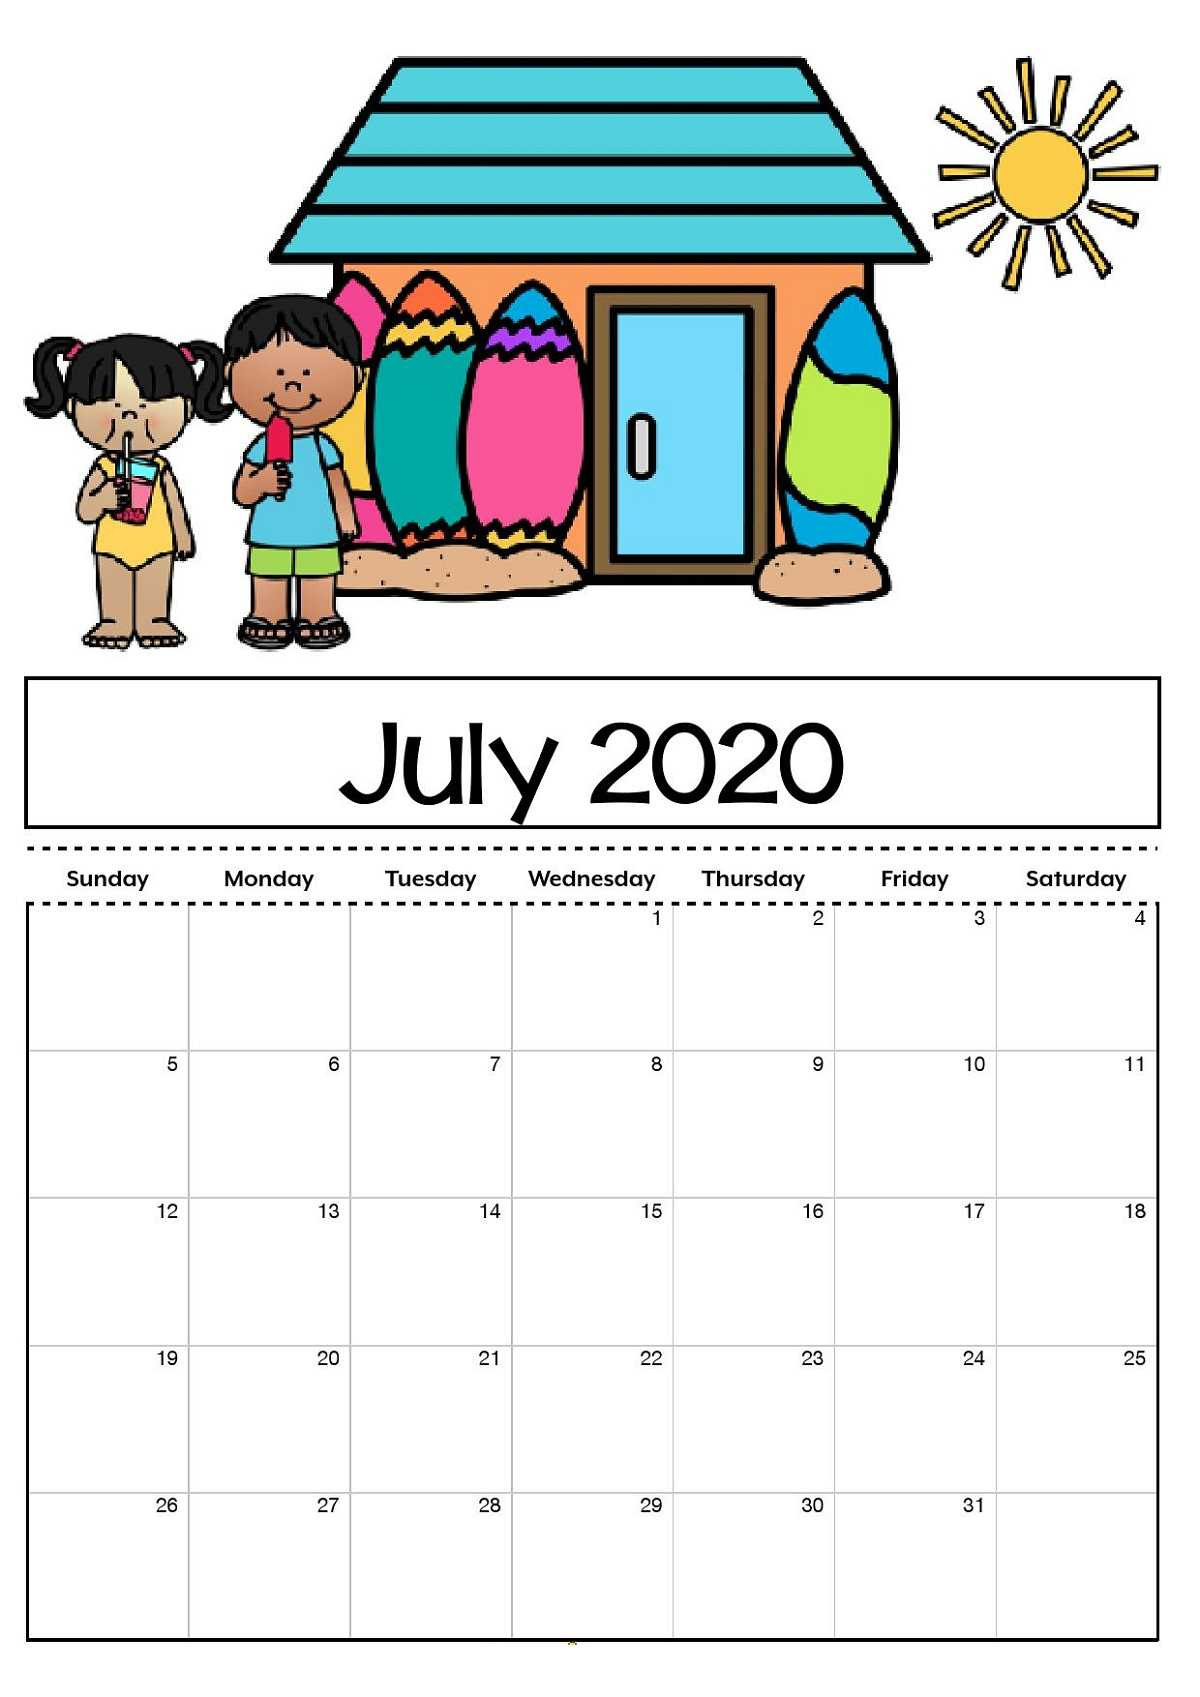 Free Printable Calendar Templates 2020 For Kids In Home In Blank Calendar Template For Kids